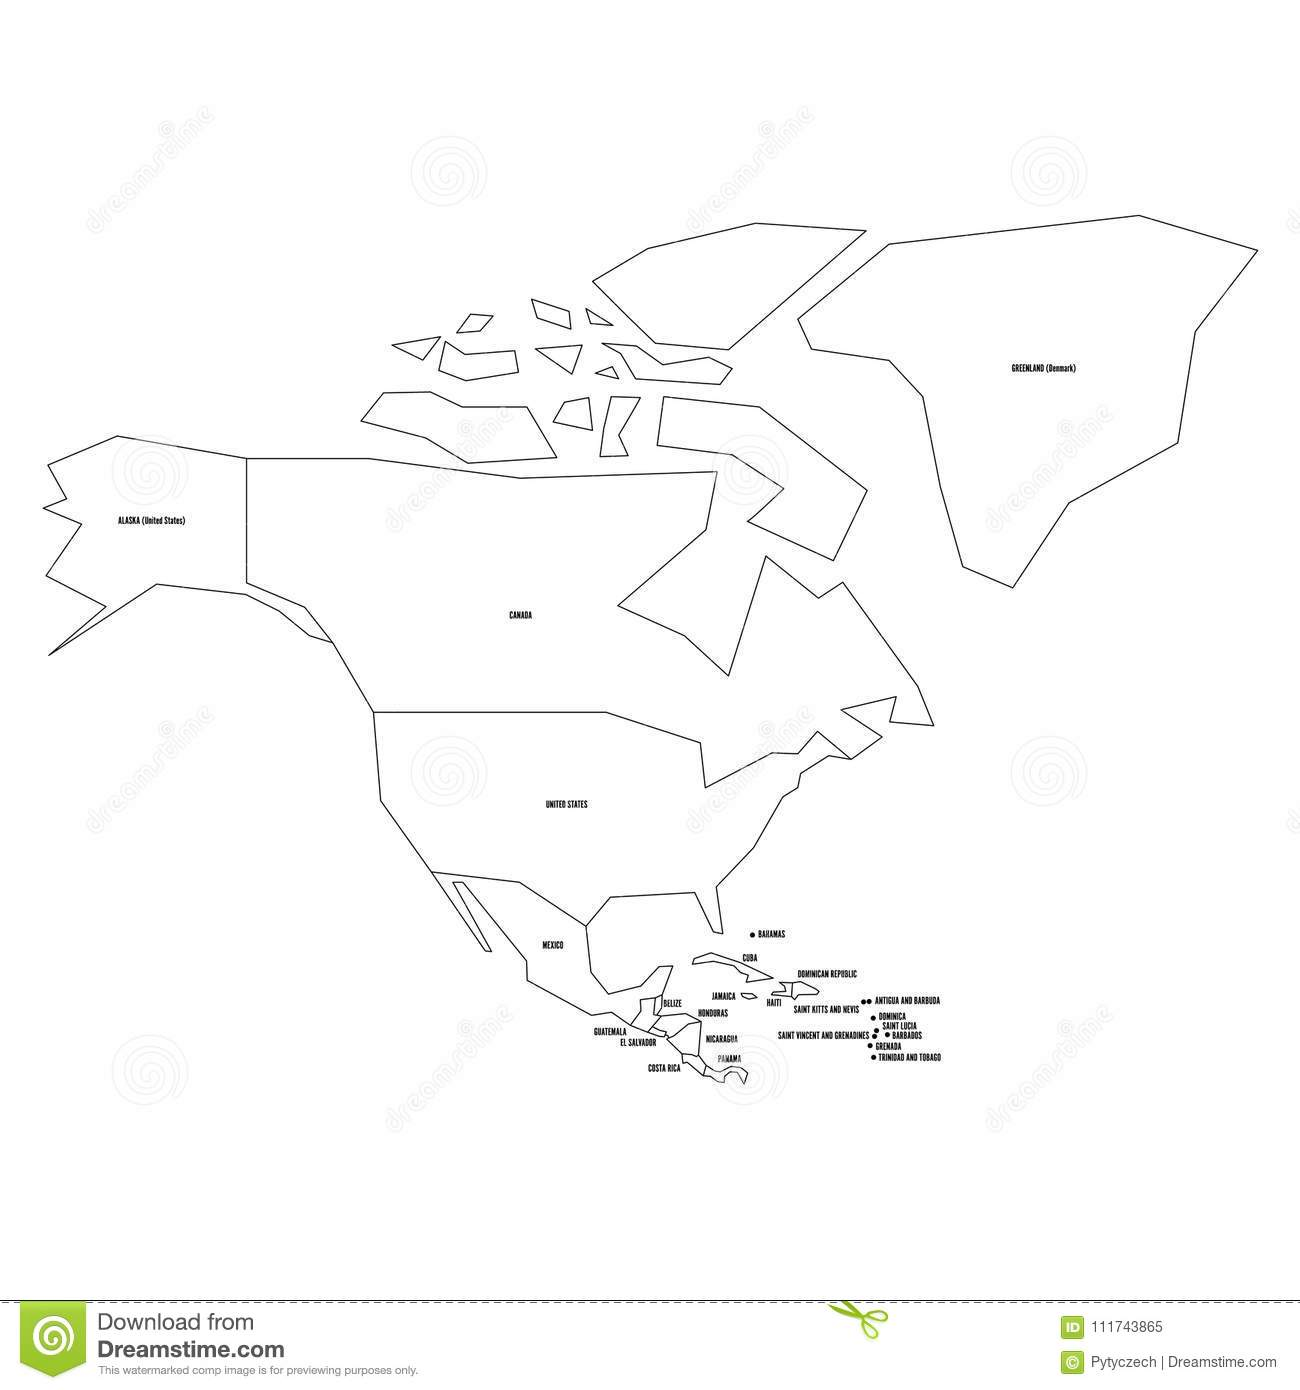 Political Map Of North America. Simplified Thin Black ... on map of ocean sketch, map of hawaii sketch, map of kentucky sketch, map of bahrain sketch, map of new france sketch, africa map sketch, map of caribbean sketch, map of hong kong sketch, map of zambia sketch, map of world sketch, map of new jersey sketch, usa map sketch, map of mauritius sketch,